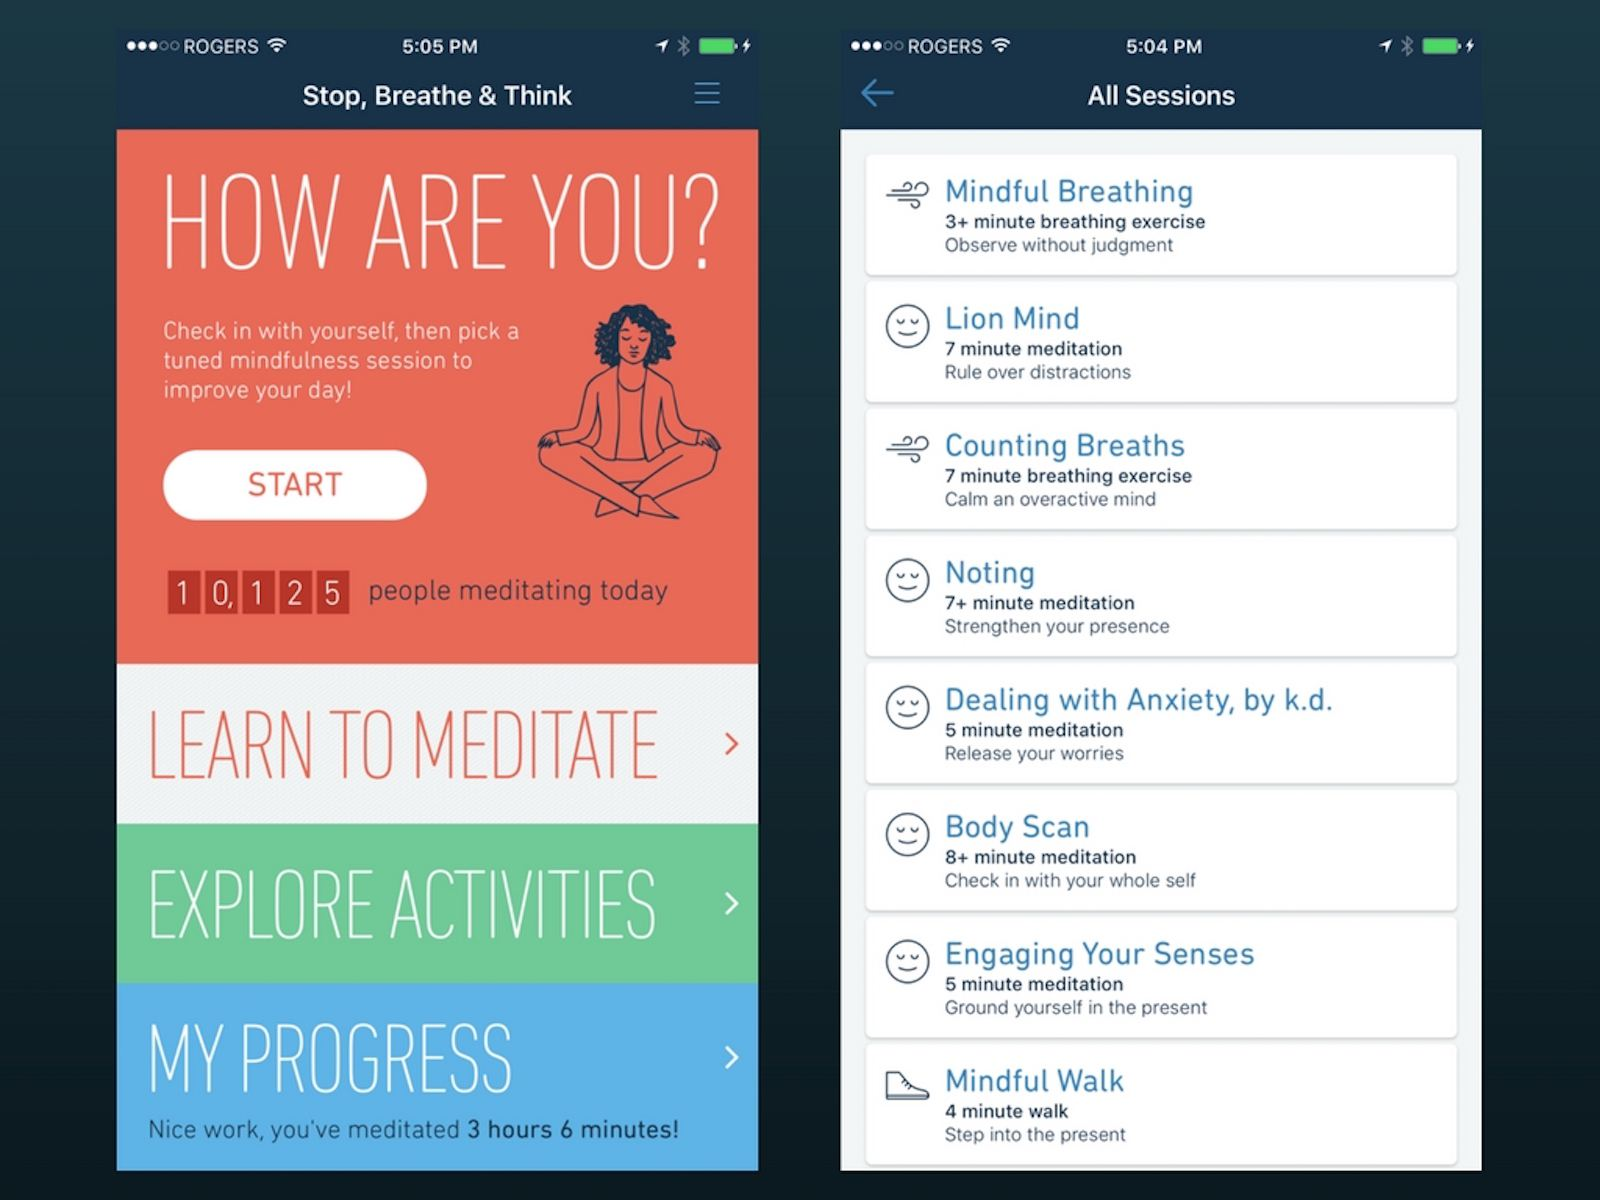 Stop, Breathe & Think for iOS